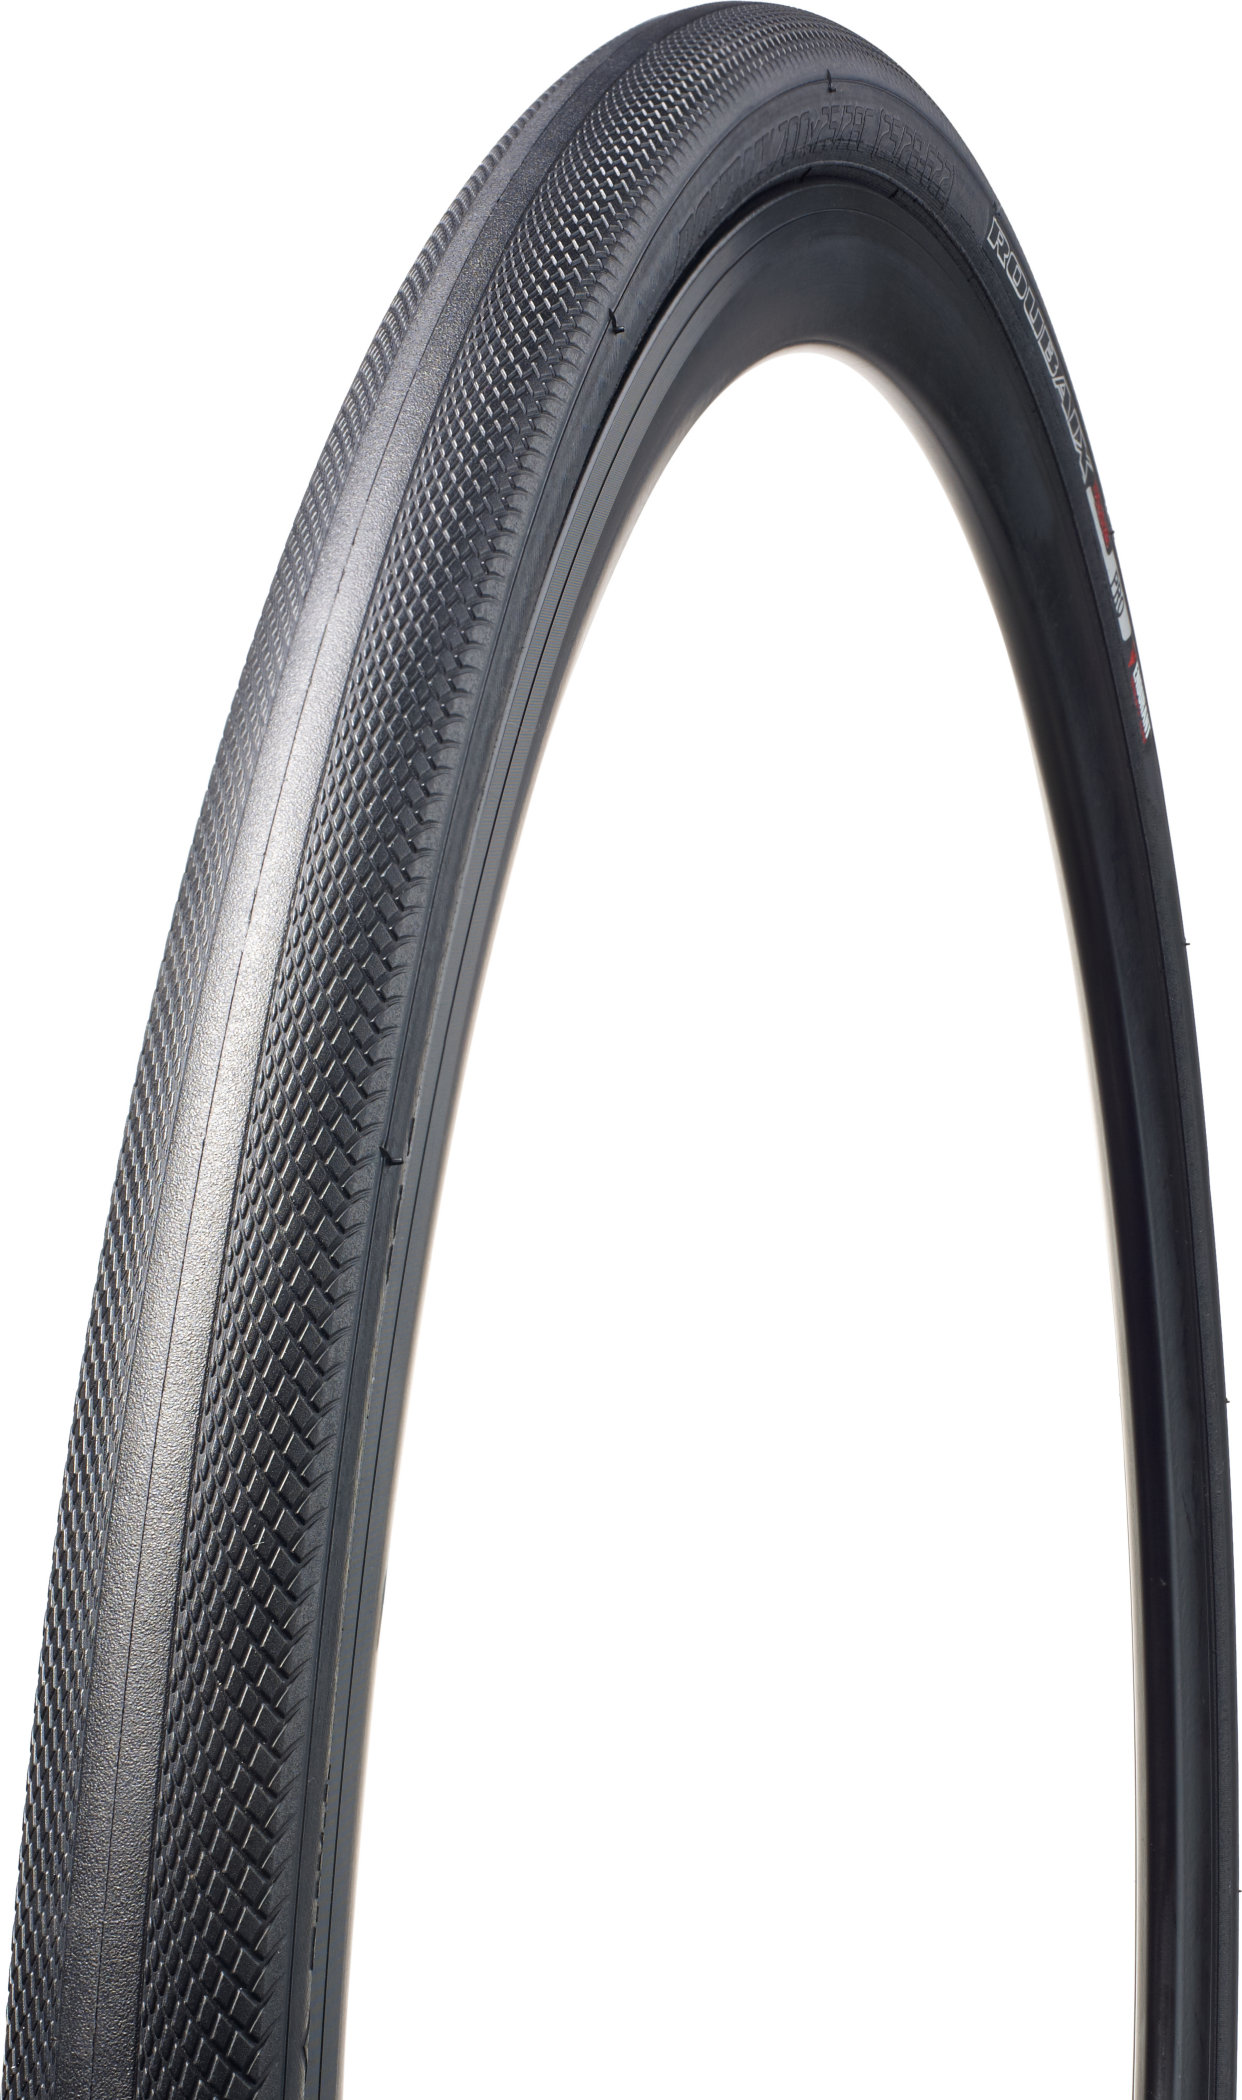 SPECIALIZED ROUBAIX ROAD TUBELESS TIRE 700X23/25C - Alpha Bikes